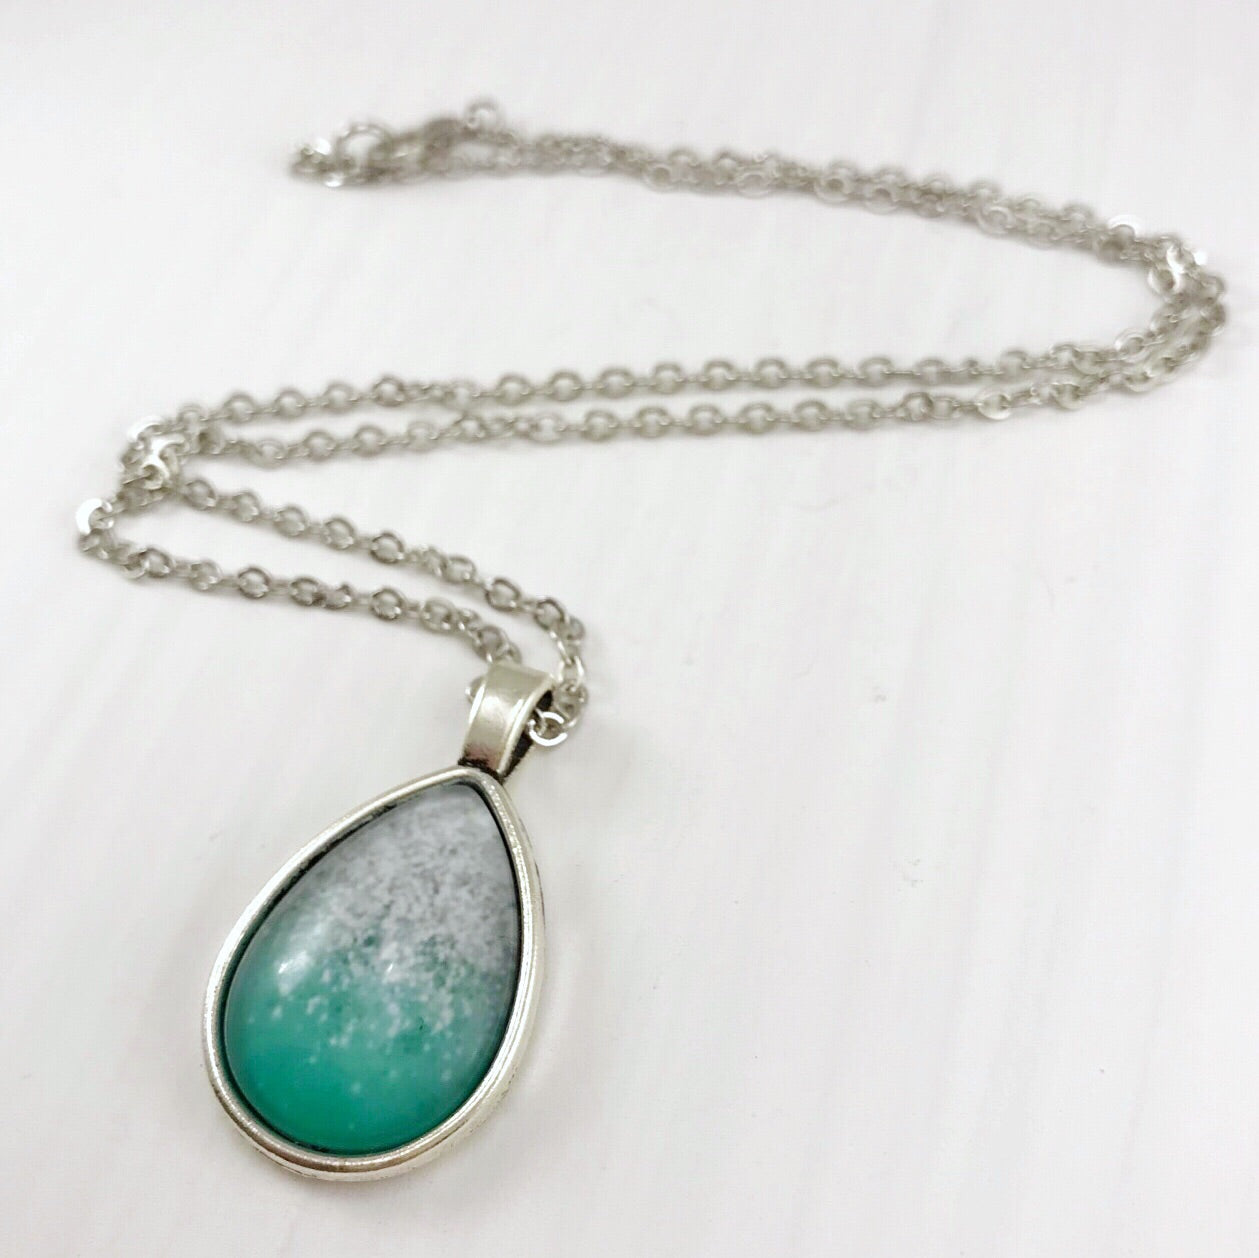 Silver and Green Teardrop Necklace - Antique Silver